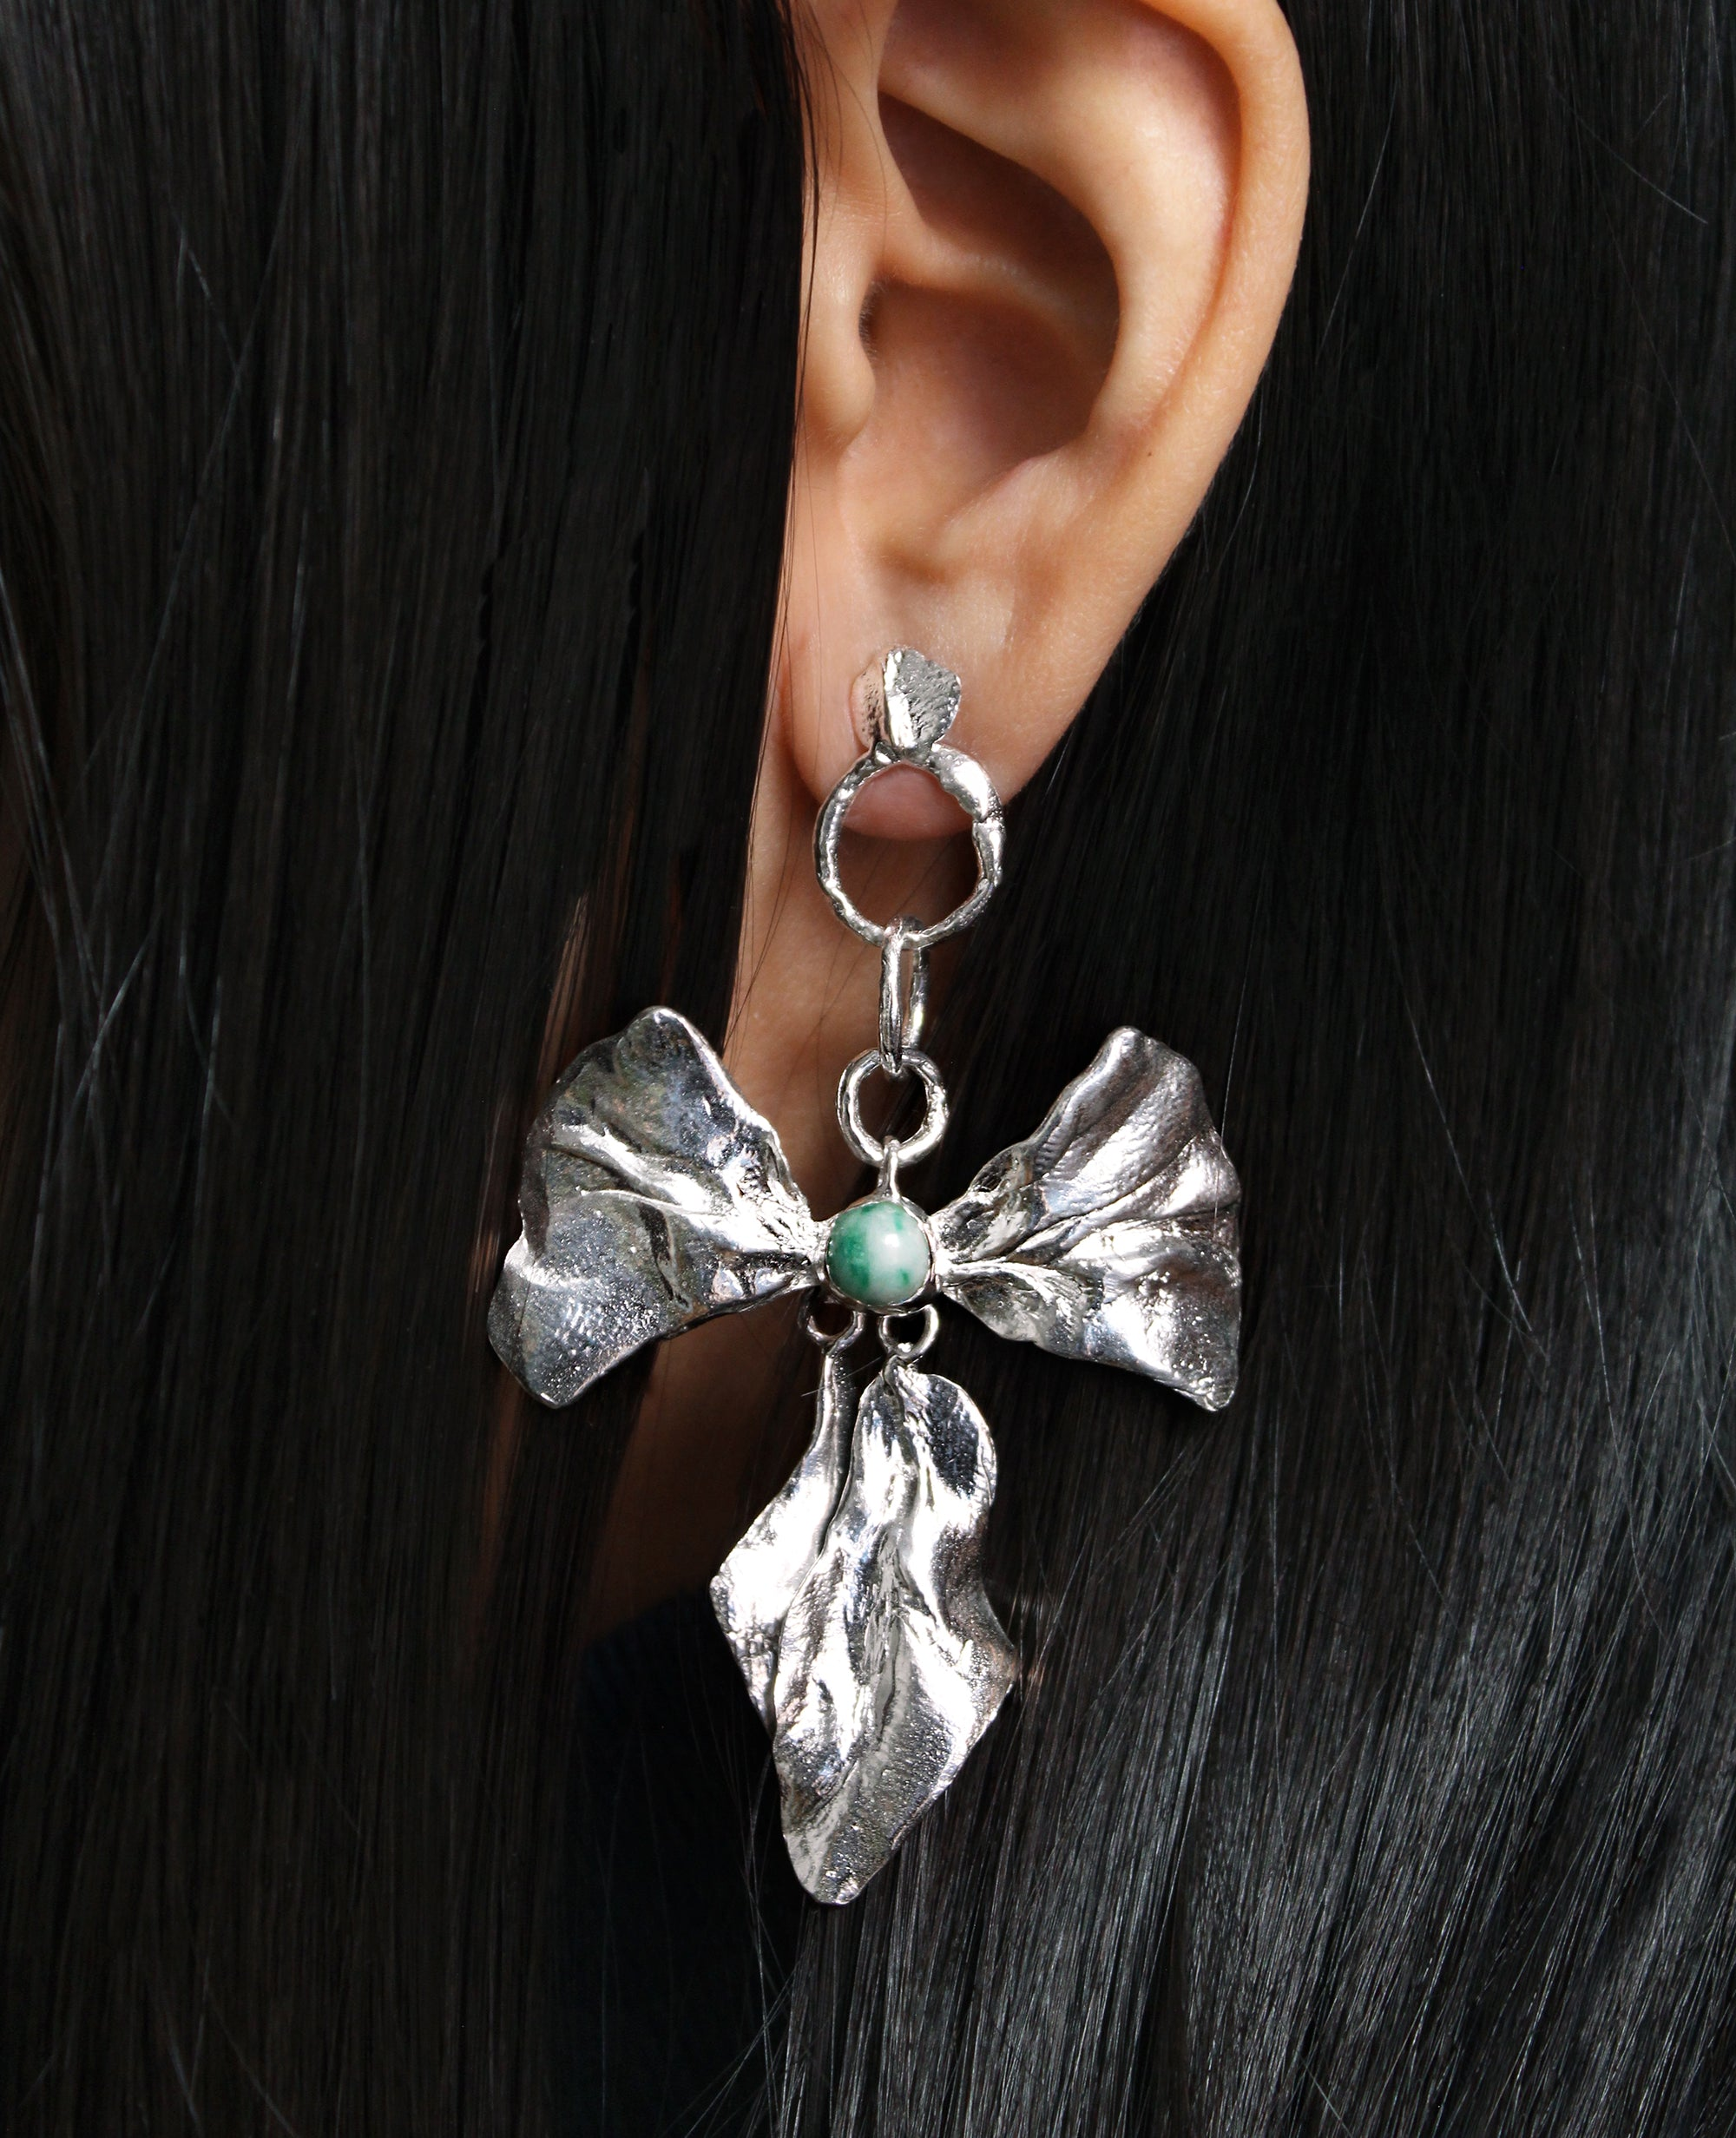 REIGN BOW // earrings with zing jiang jade - ORA-C jewelry - handmade jewelry by Montreal based independent designer Caroline Pham